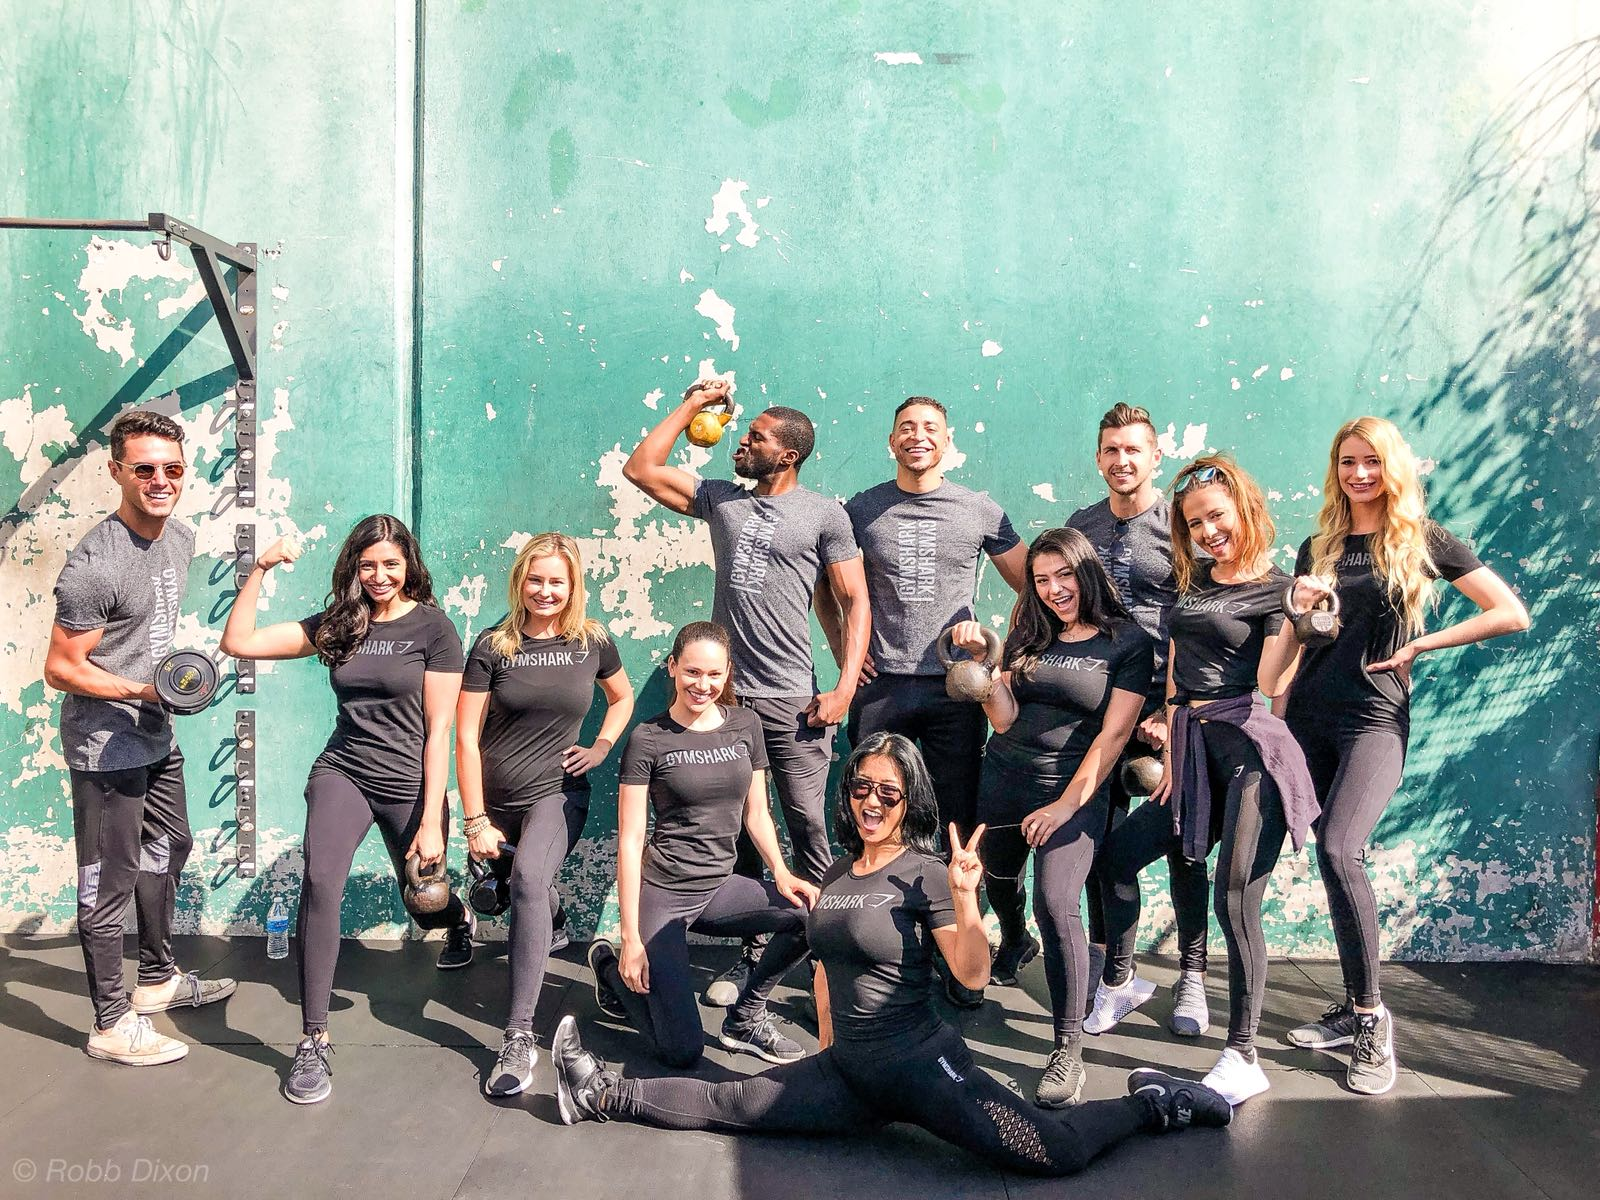 Promotion Staff for Gymshark